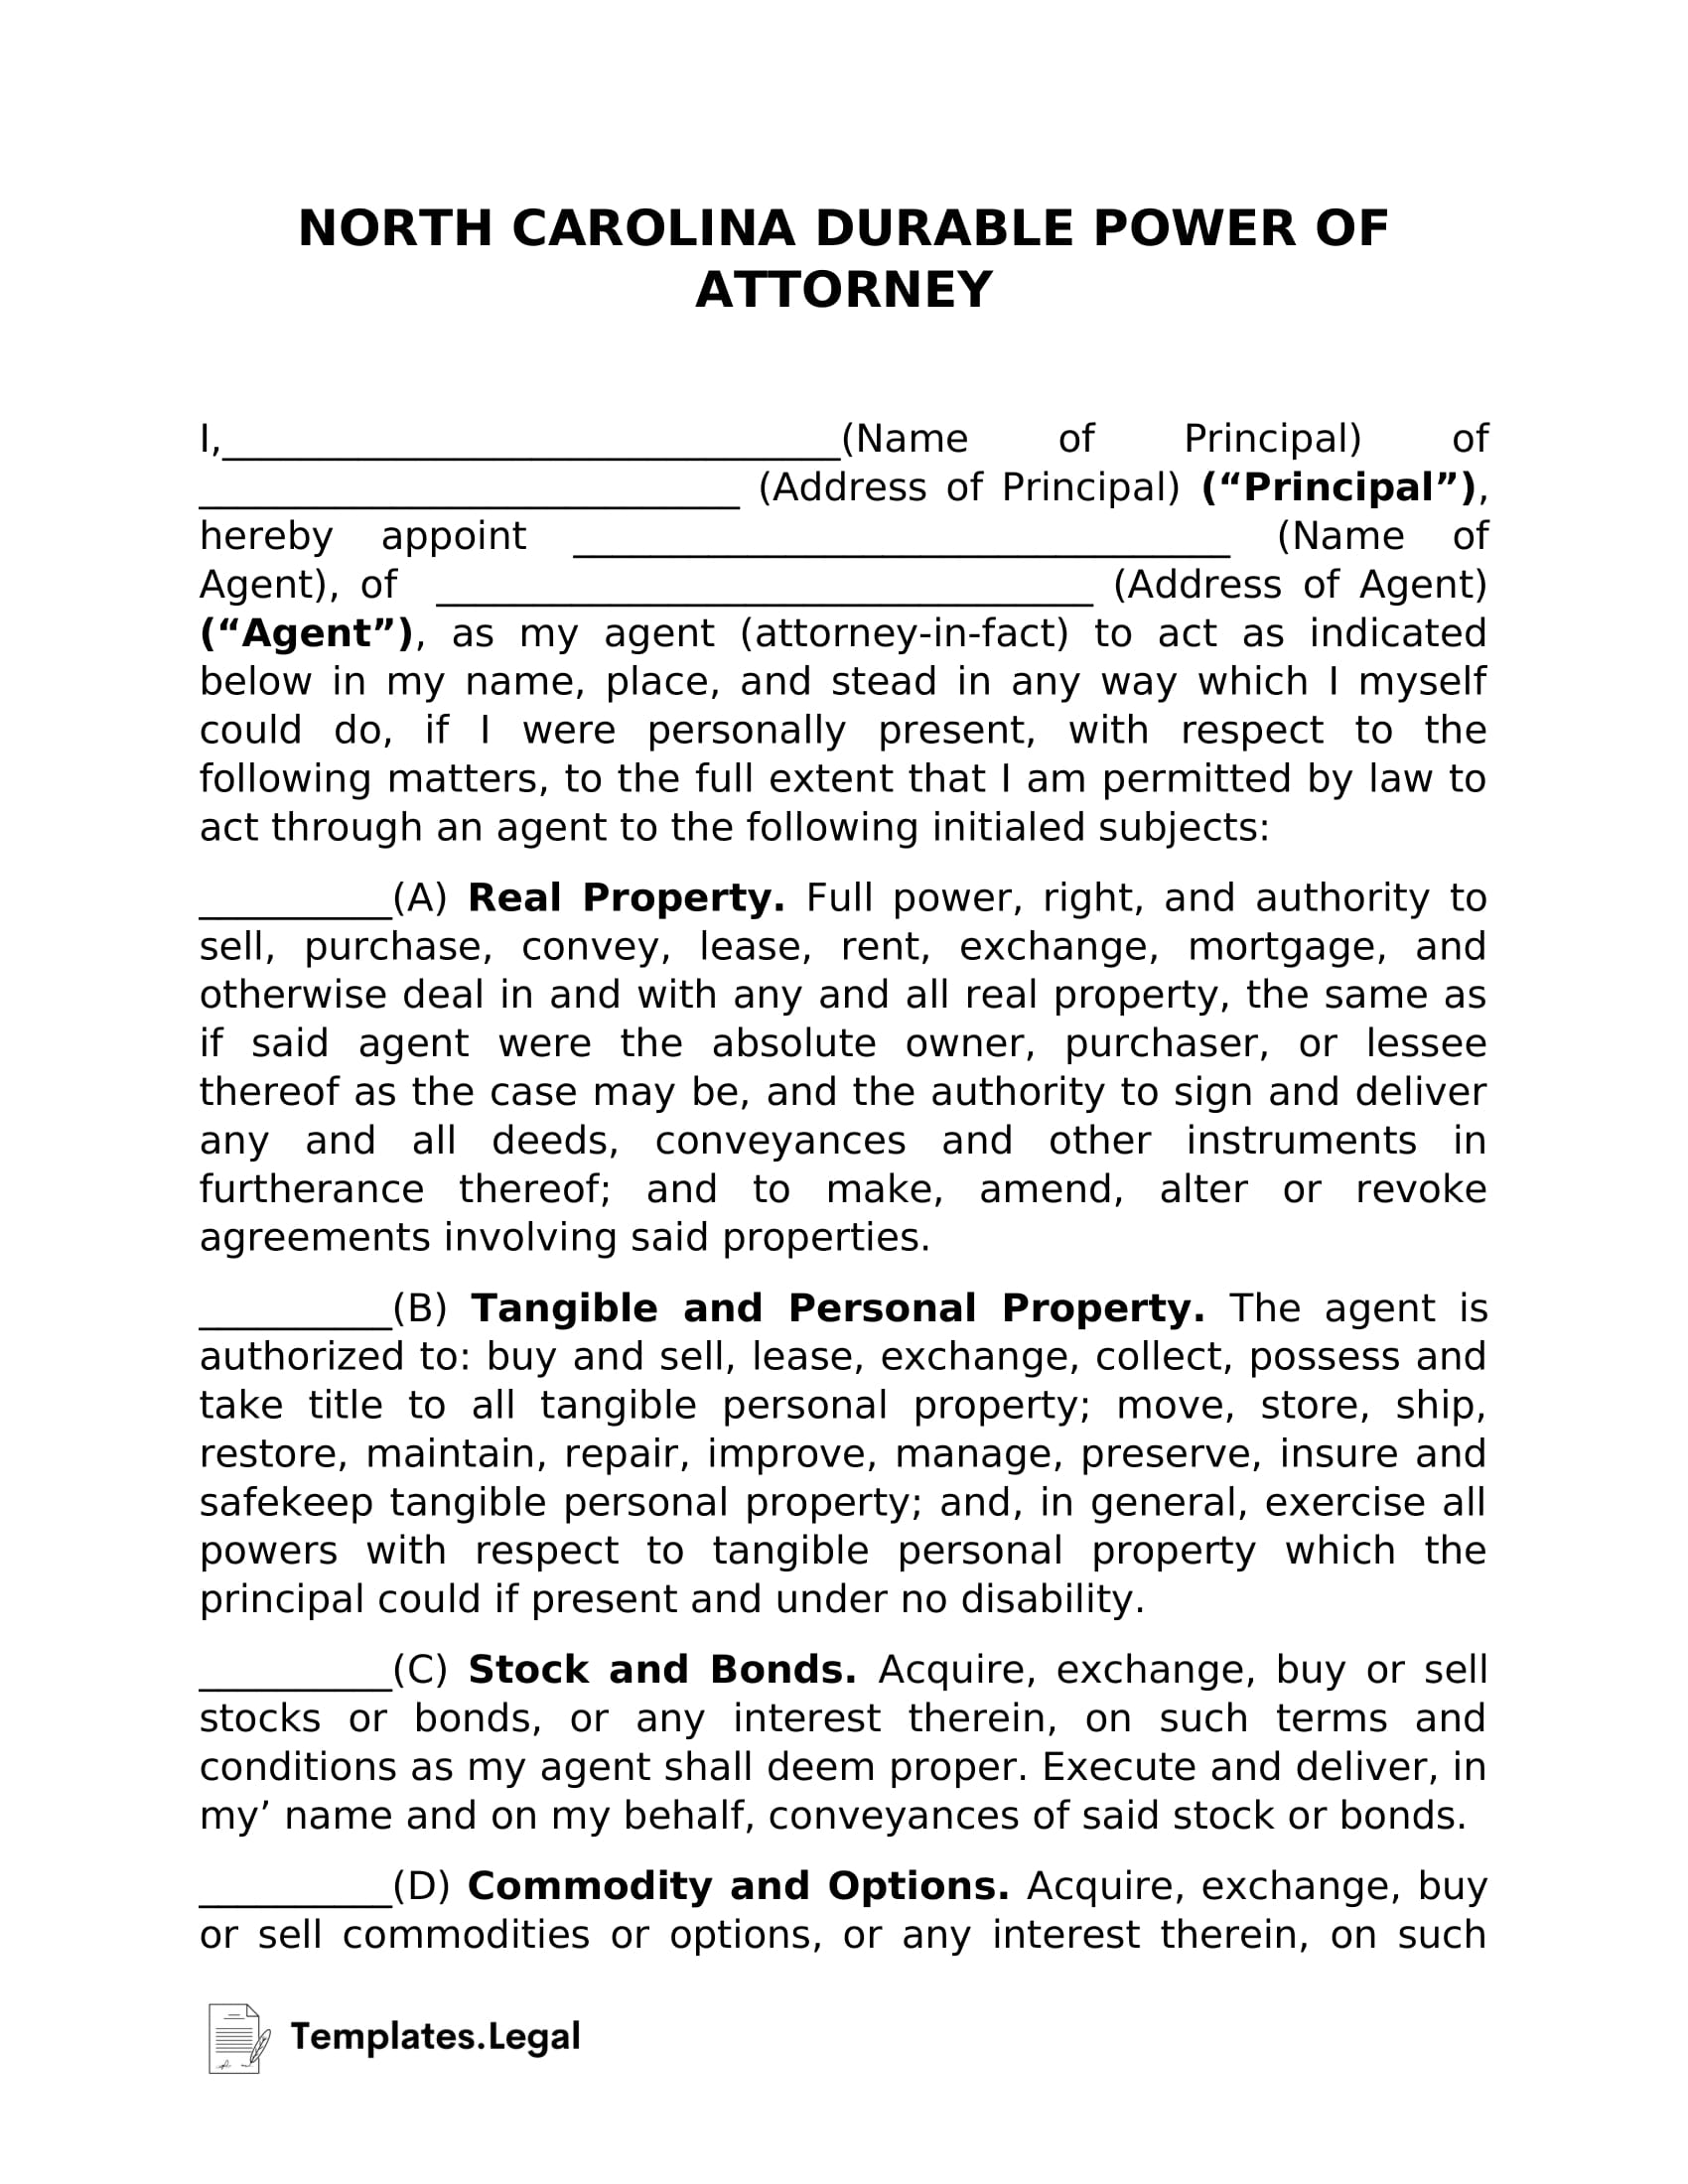 North Carolina Durable Power of Attorney - Templates.Legal